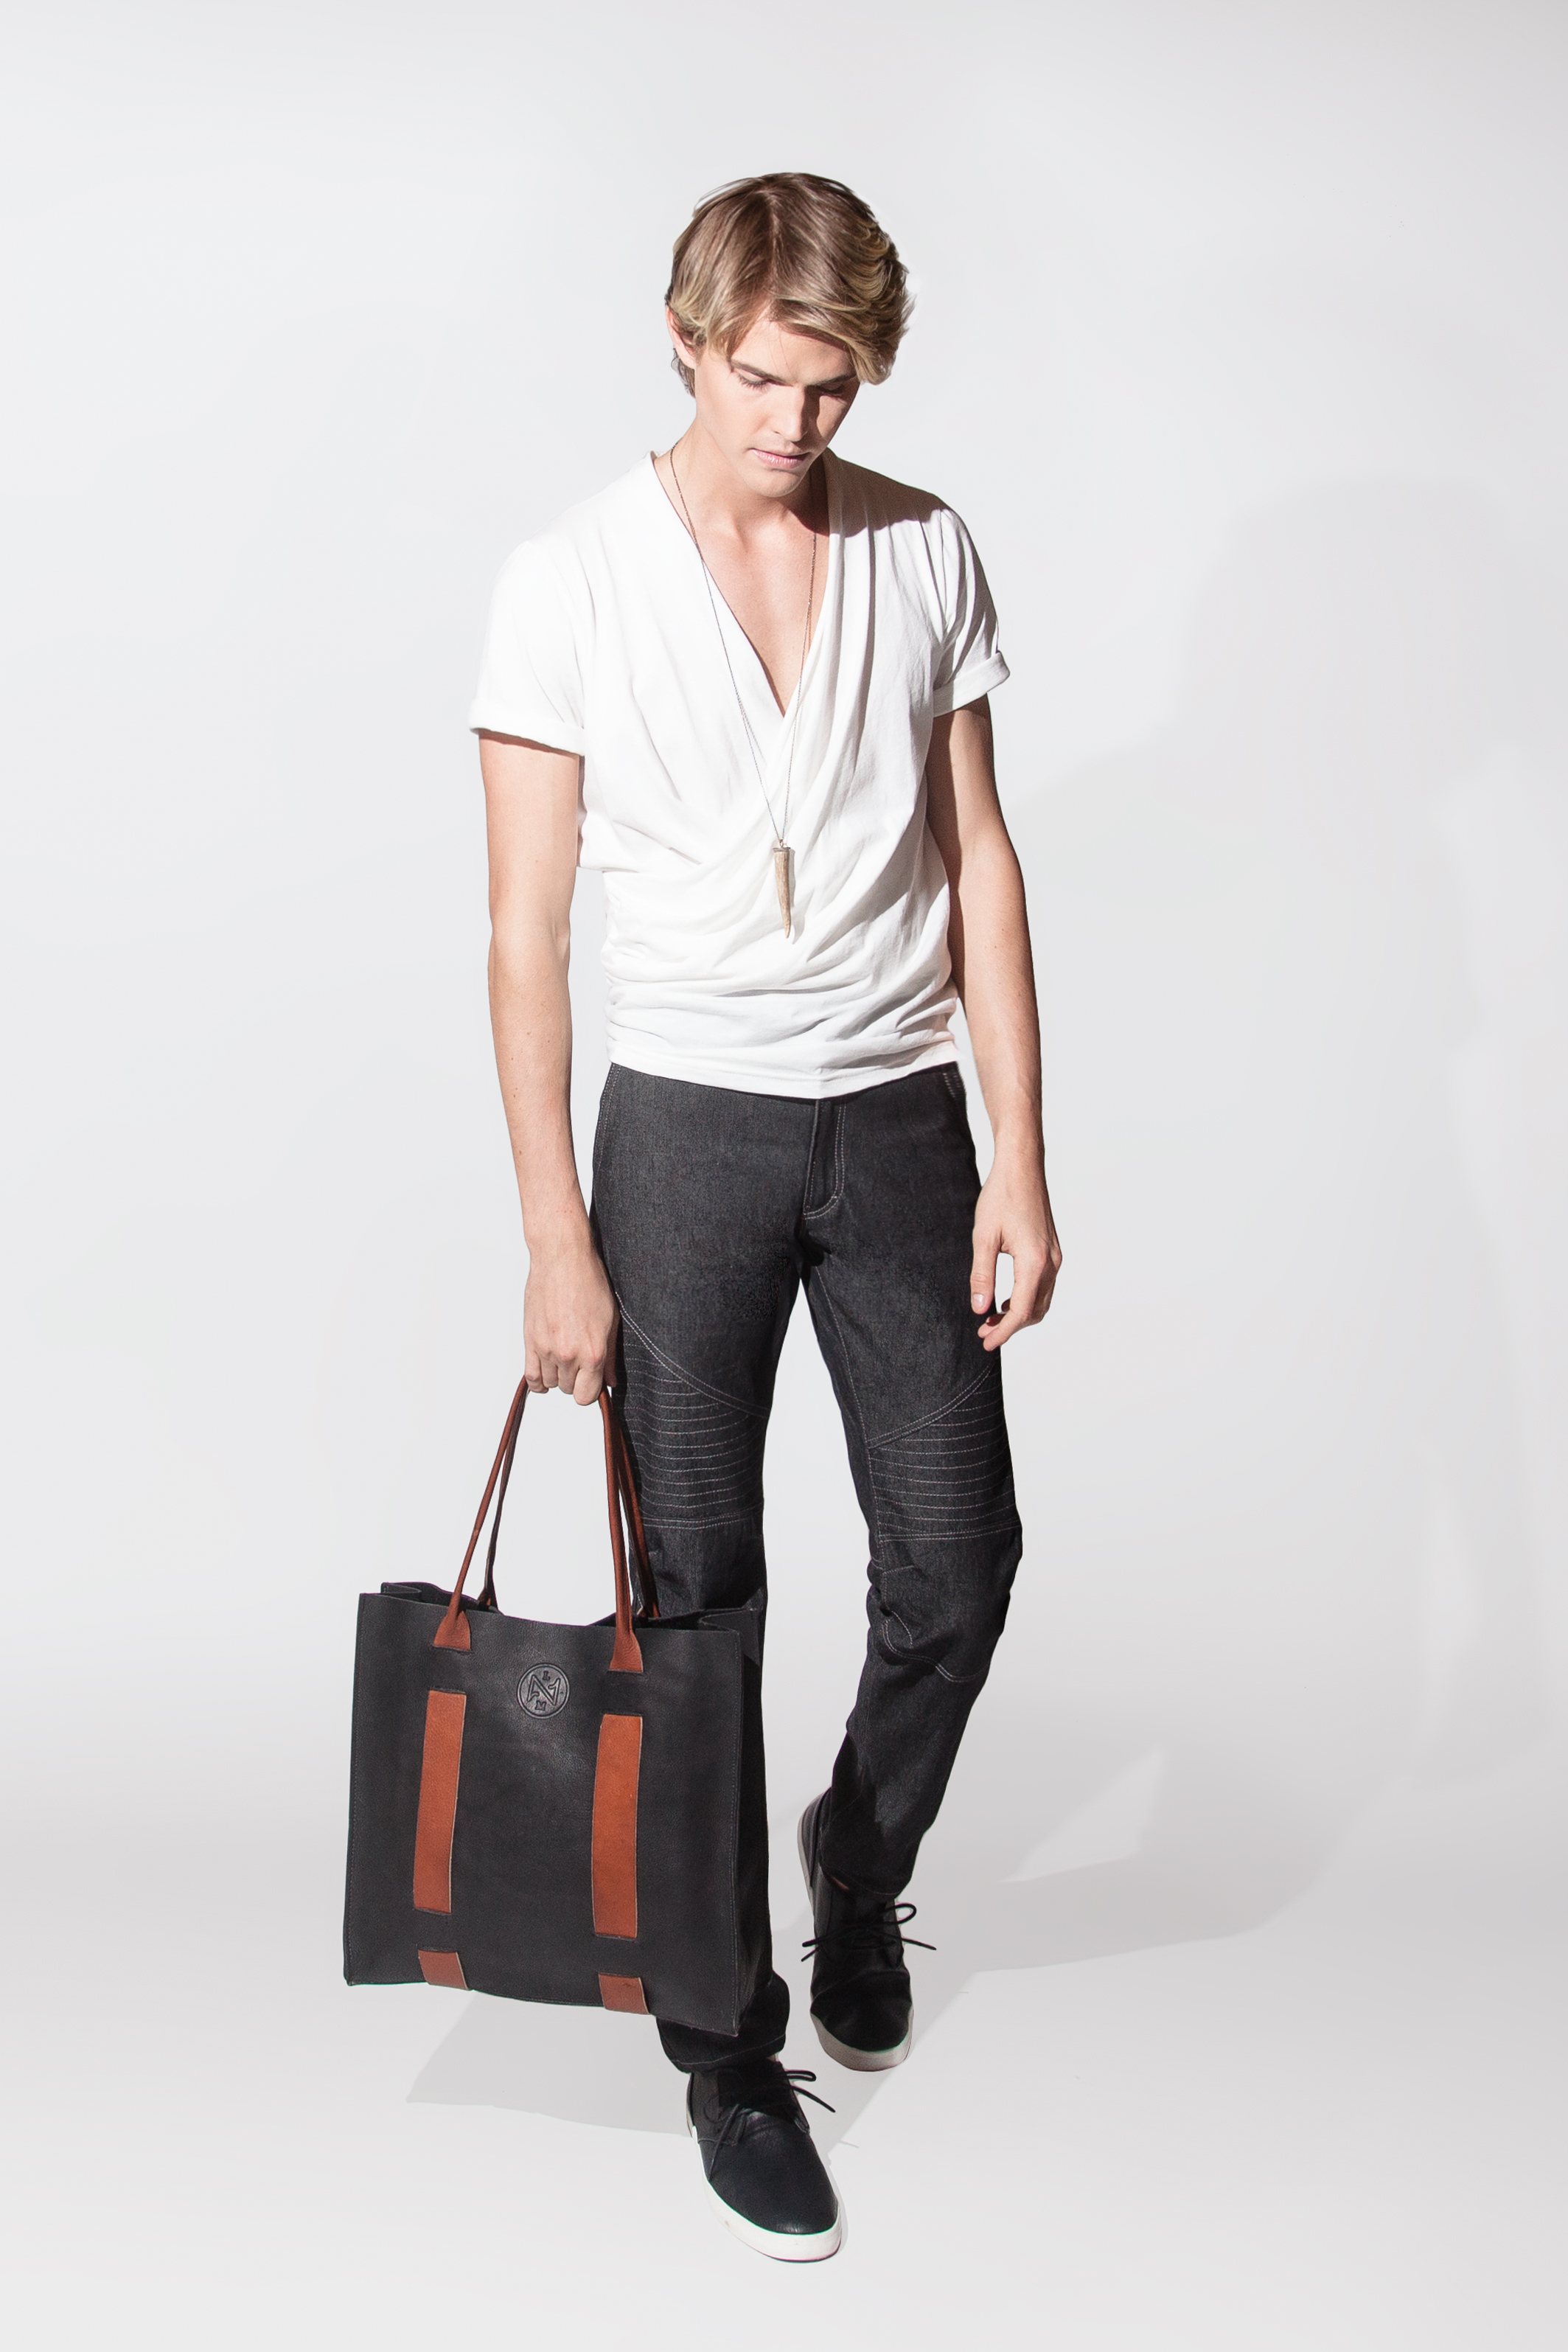 rustic leather tote $175